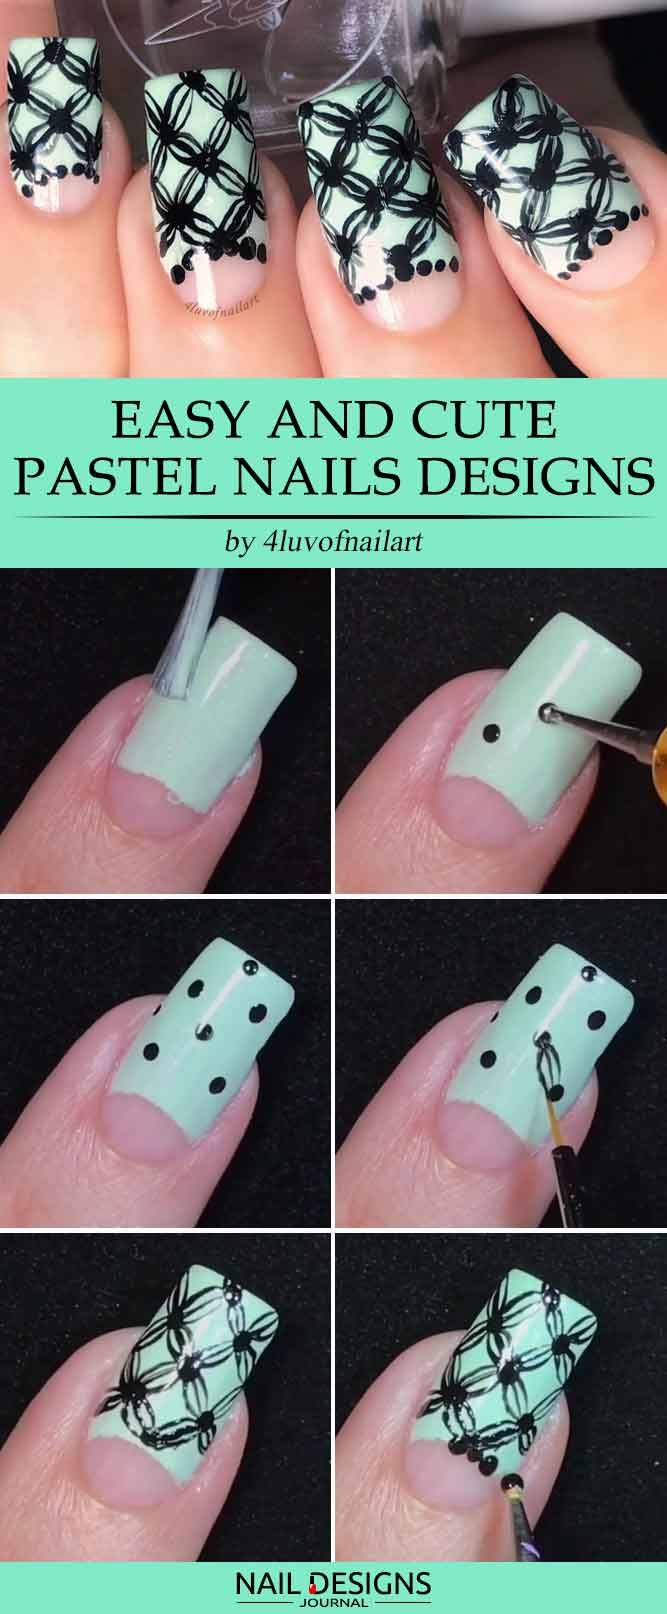 1350 best do your own nails images on Pinterest | Nail design, Nail ...